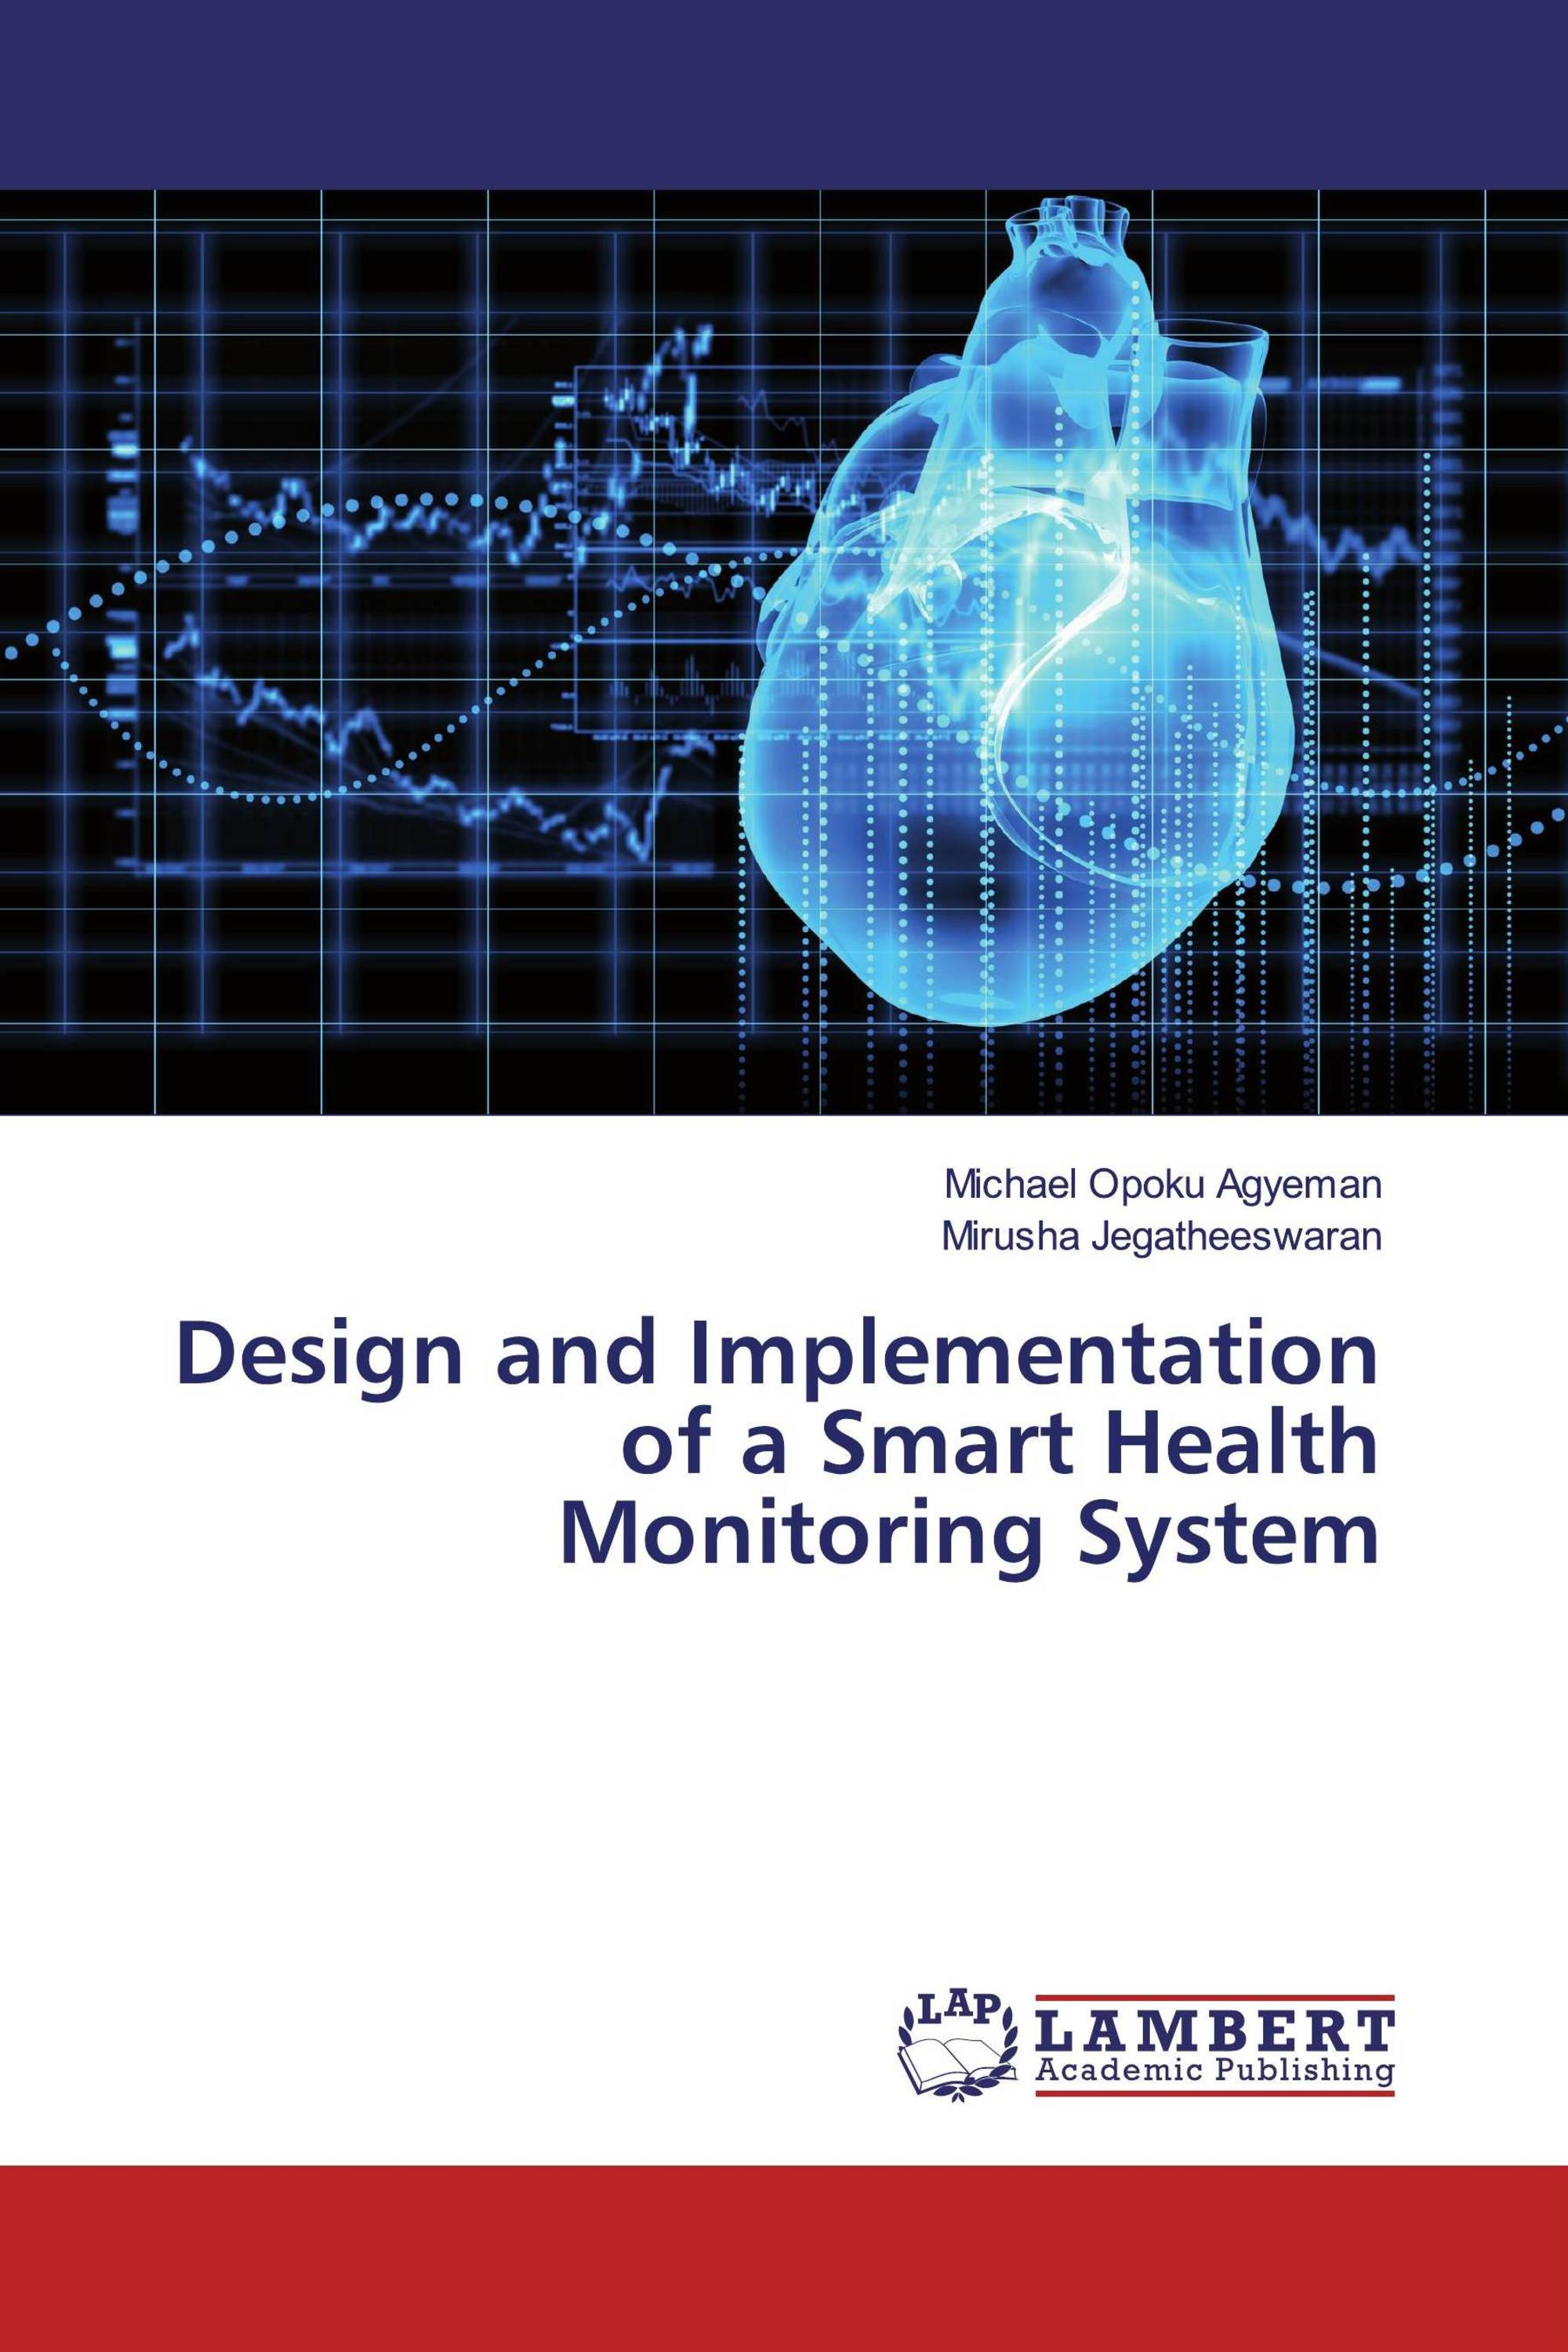 Design and Implementation of a Smart Health Monitoring System